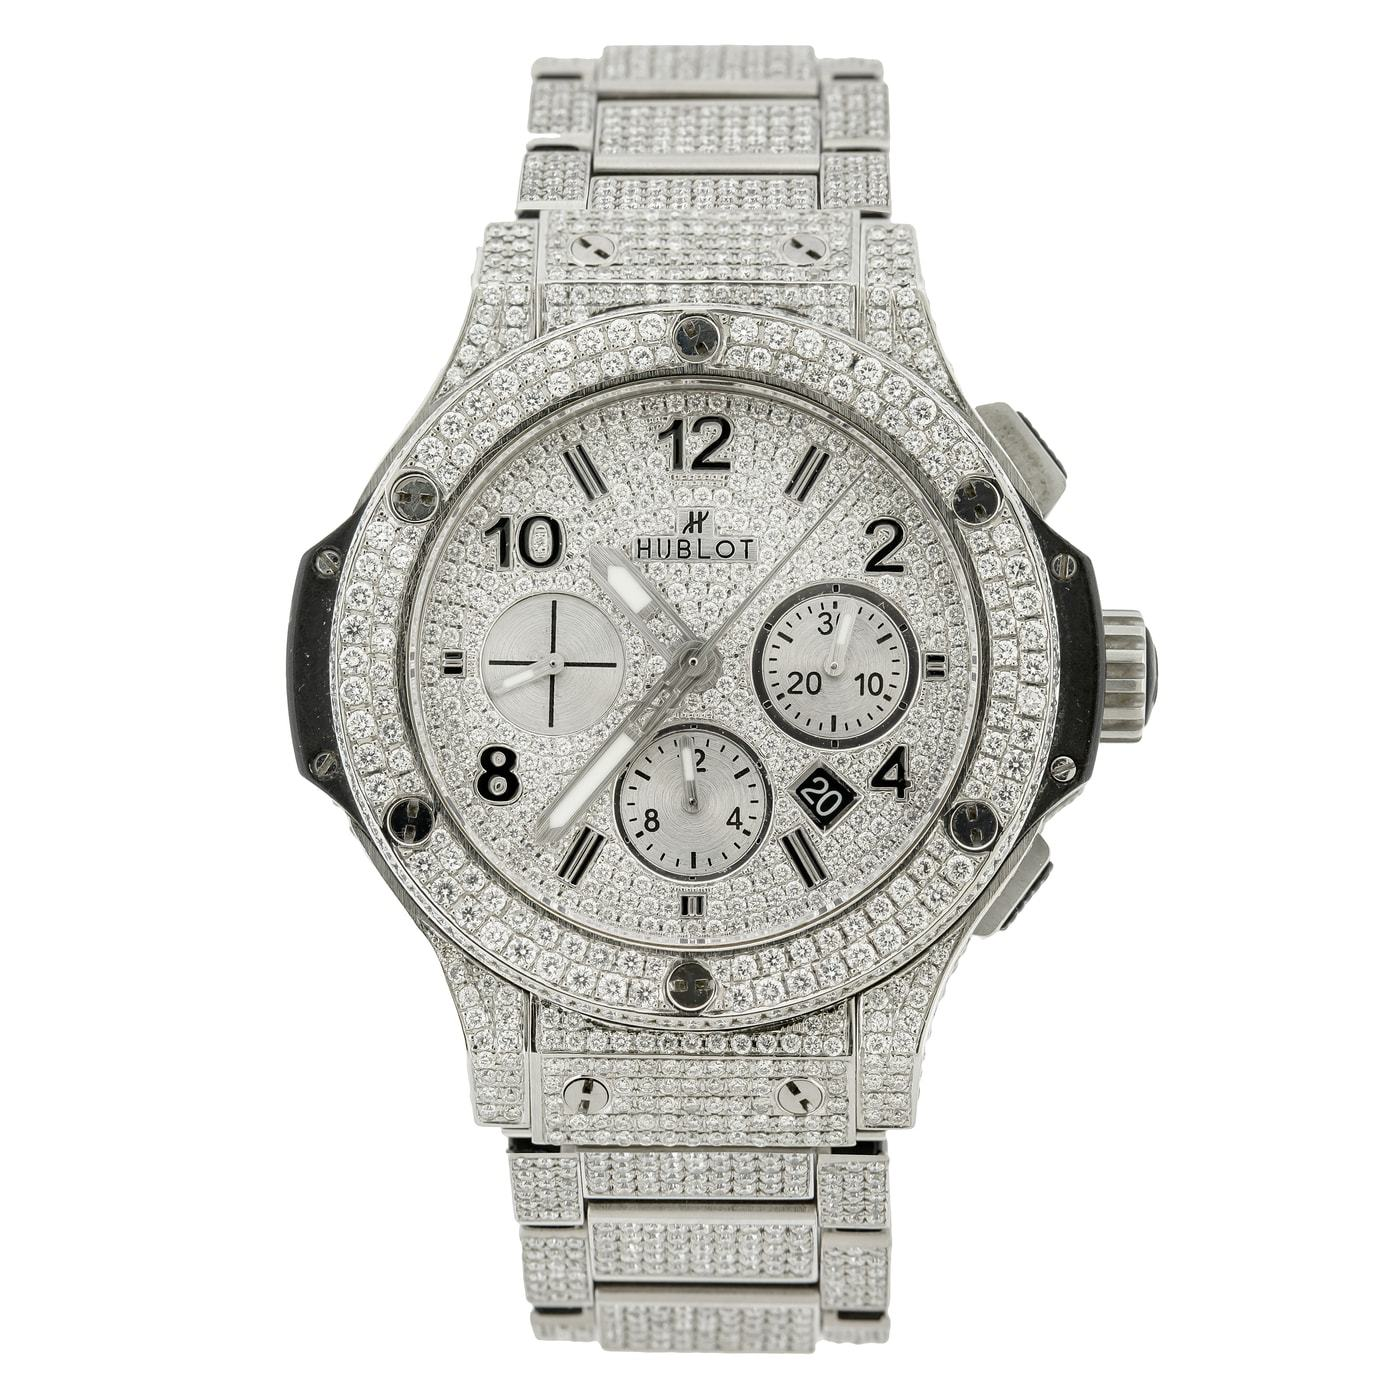 Hublot Big Bang 301.SX 44mm 16CT Diamond Watch